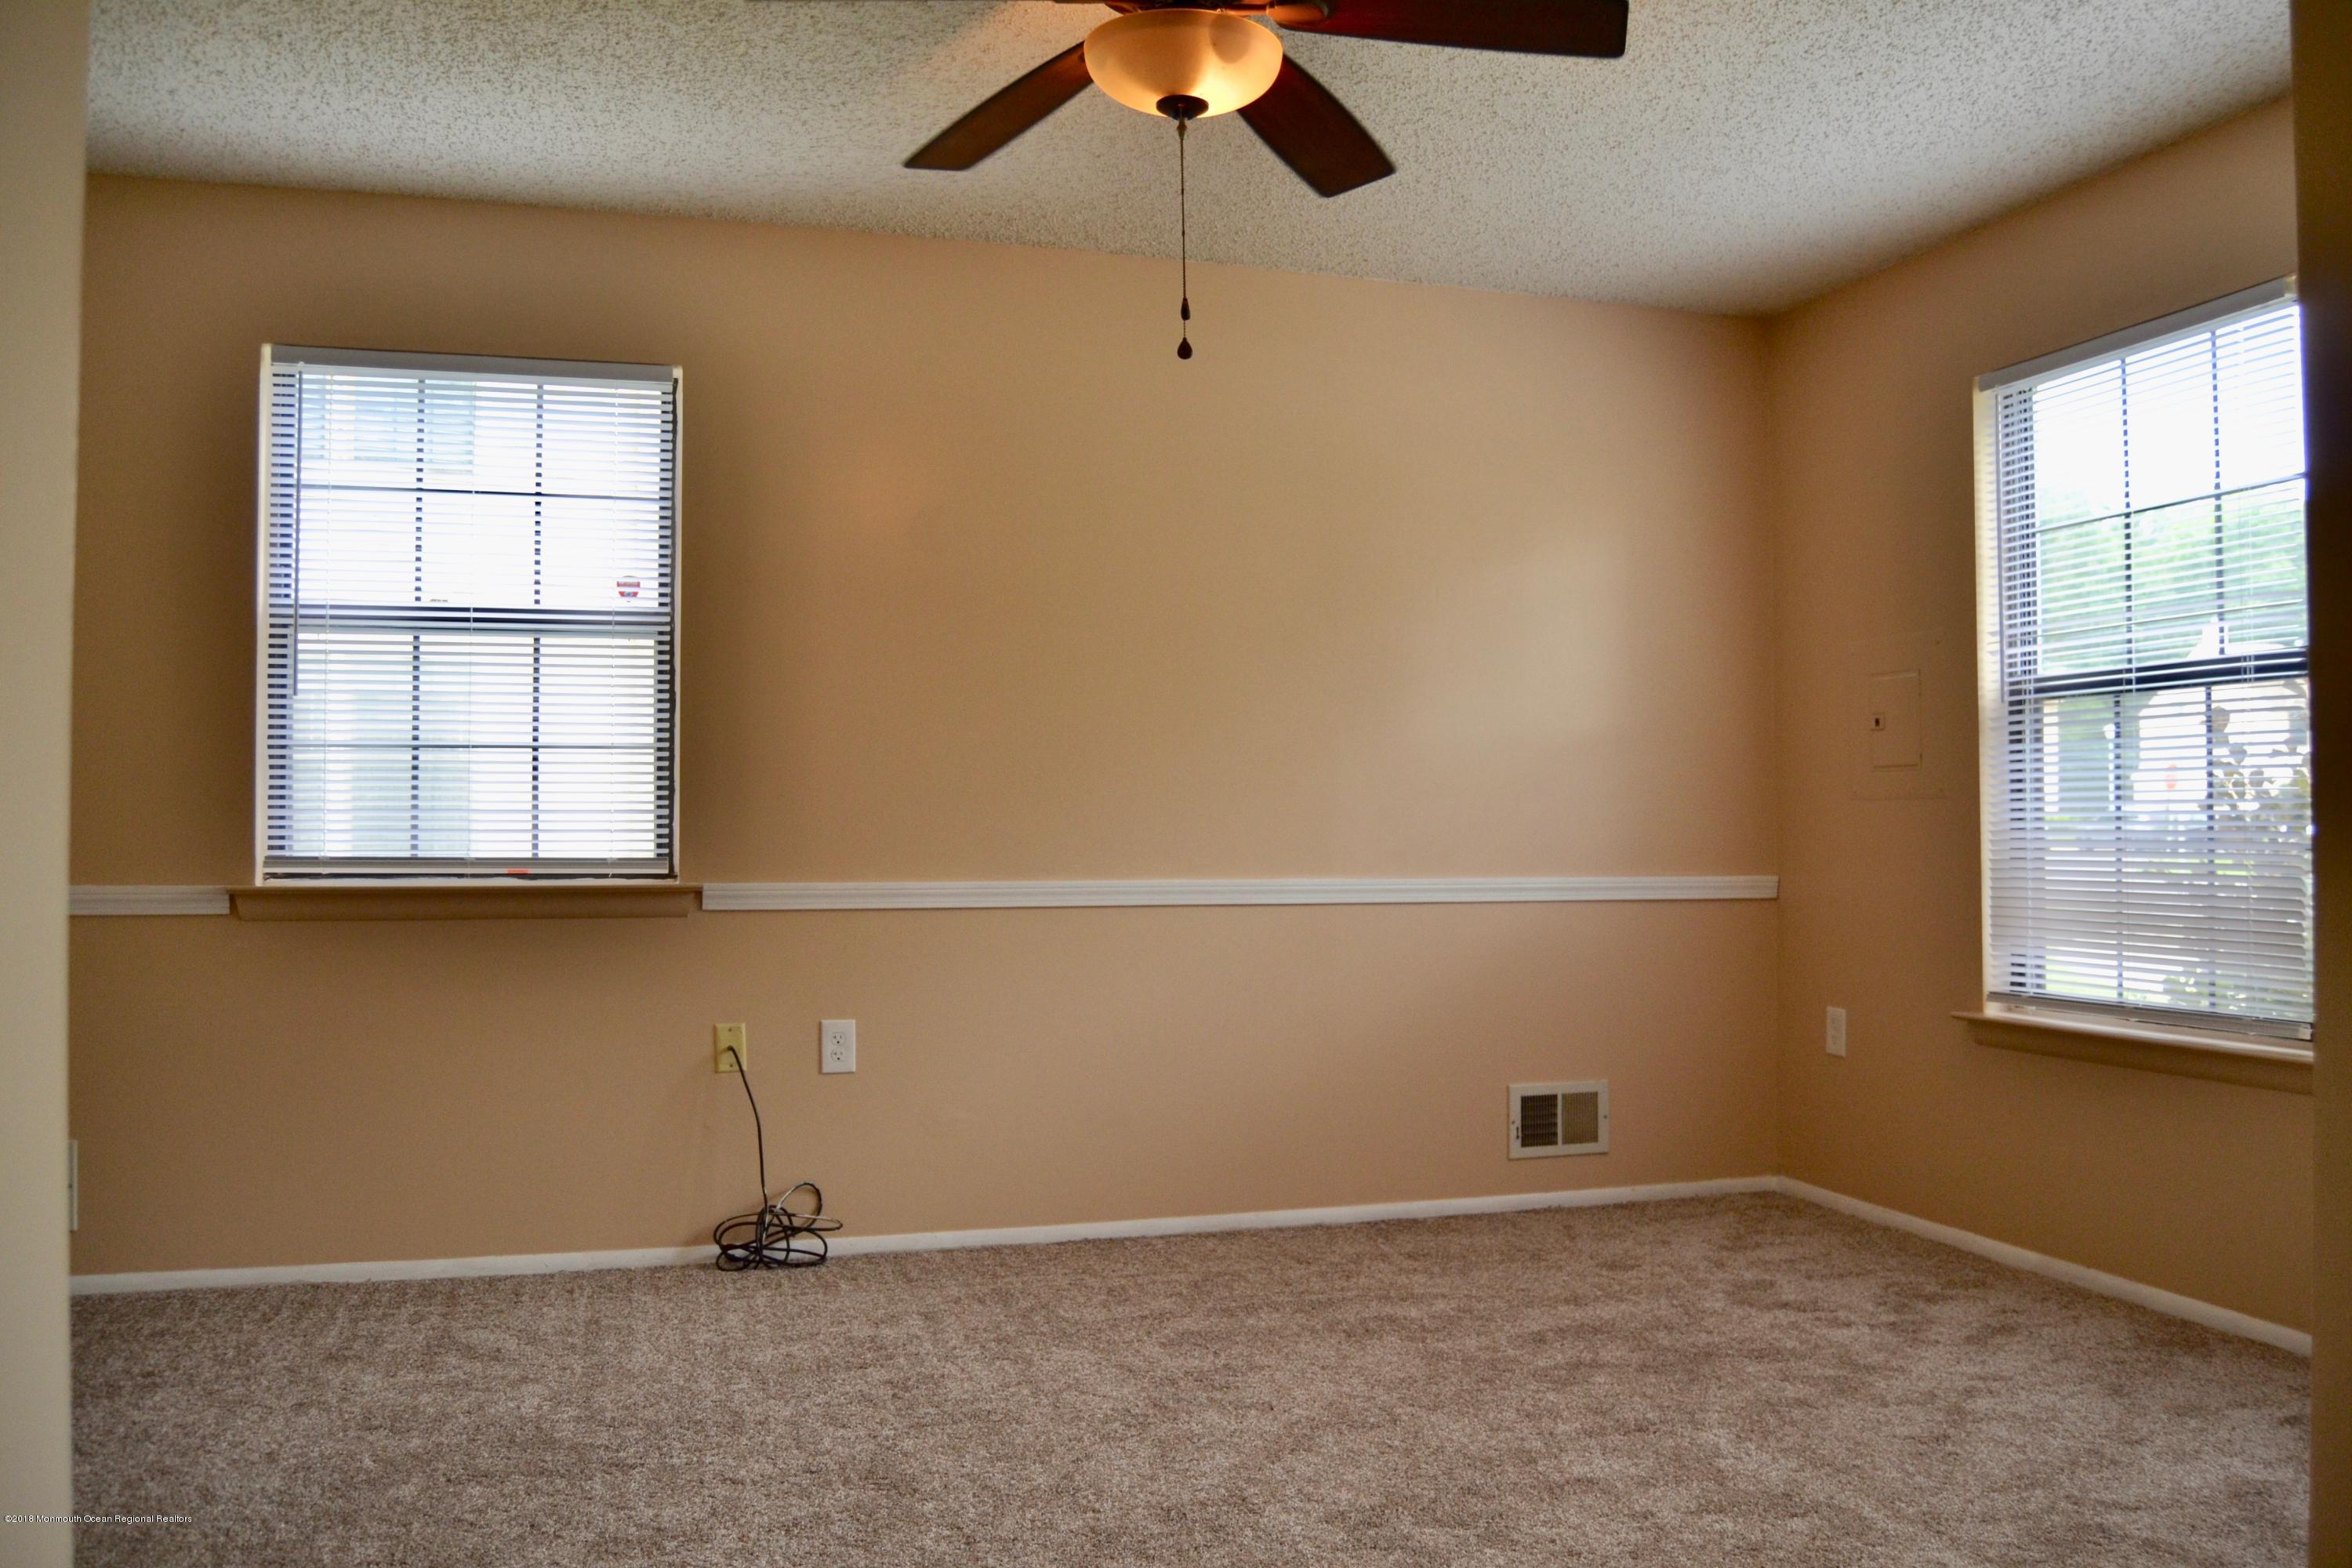 LIVING ROOM WITH NEW WINDOW TREATMENTS